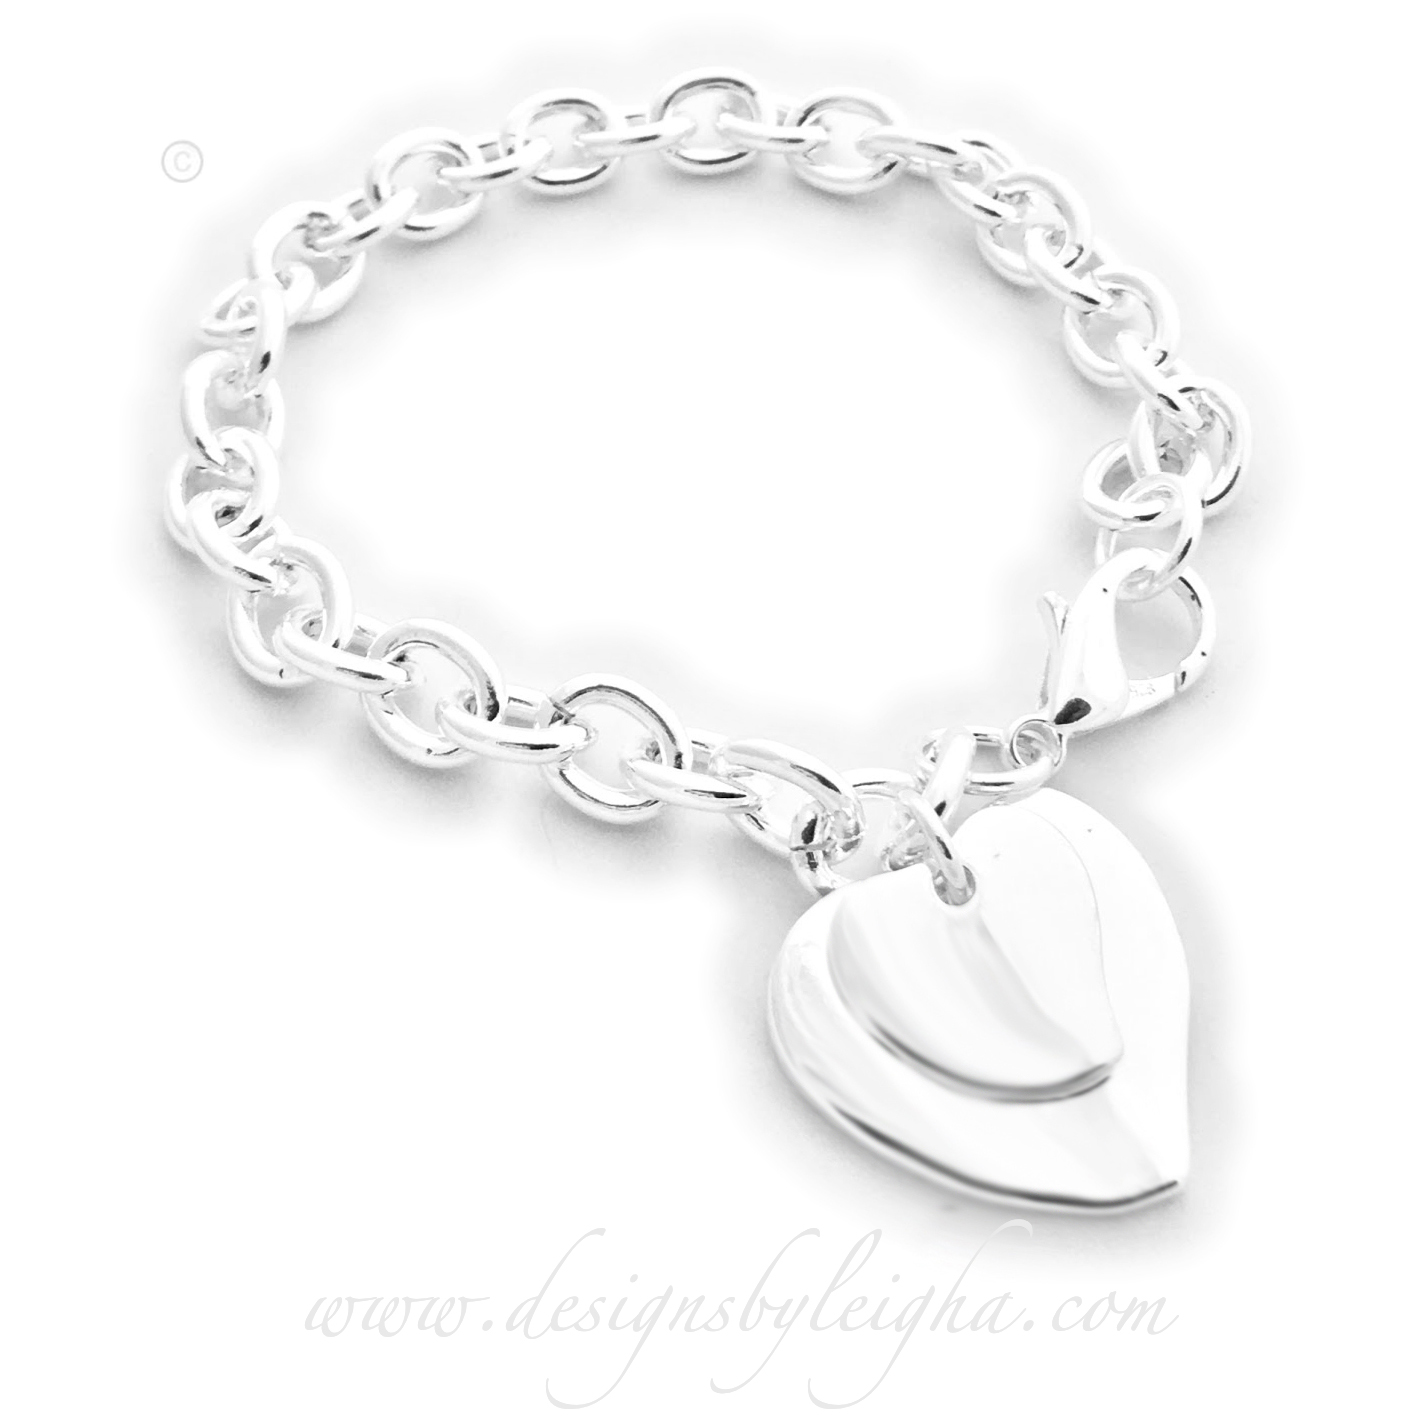 Thick silver chain charm bracelet with 2 heart charms and a lobster clasp.